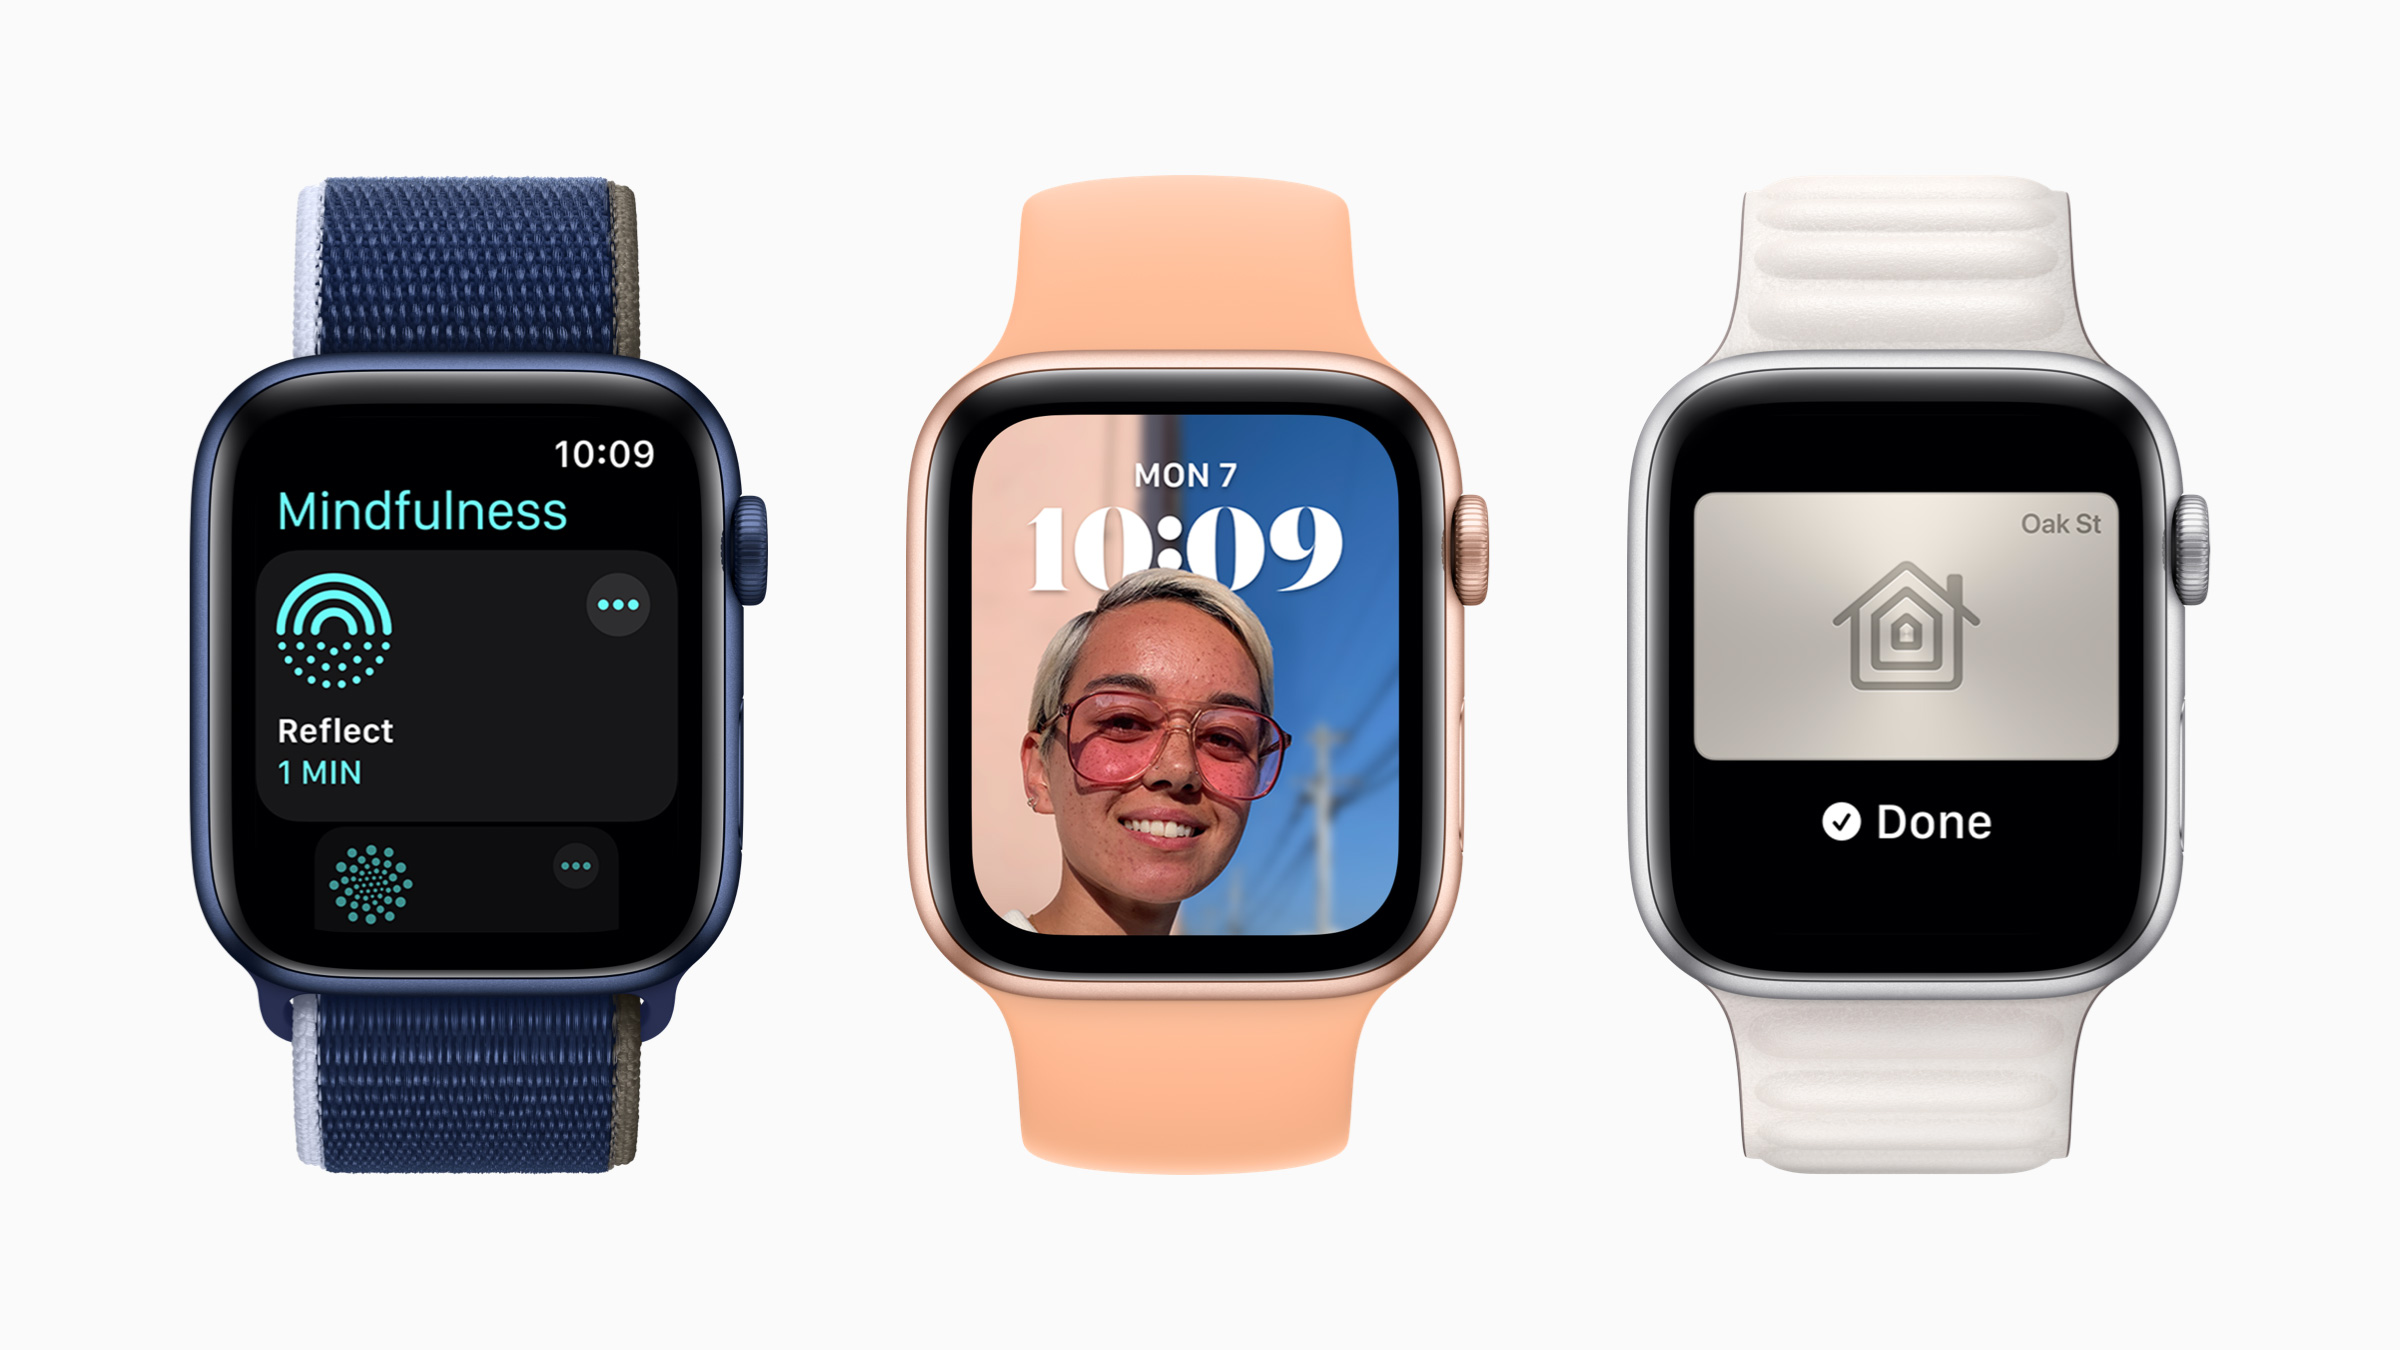 What to expect from the latest Apple Watch watchOS 8